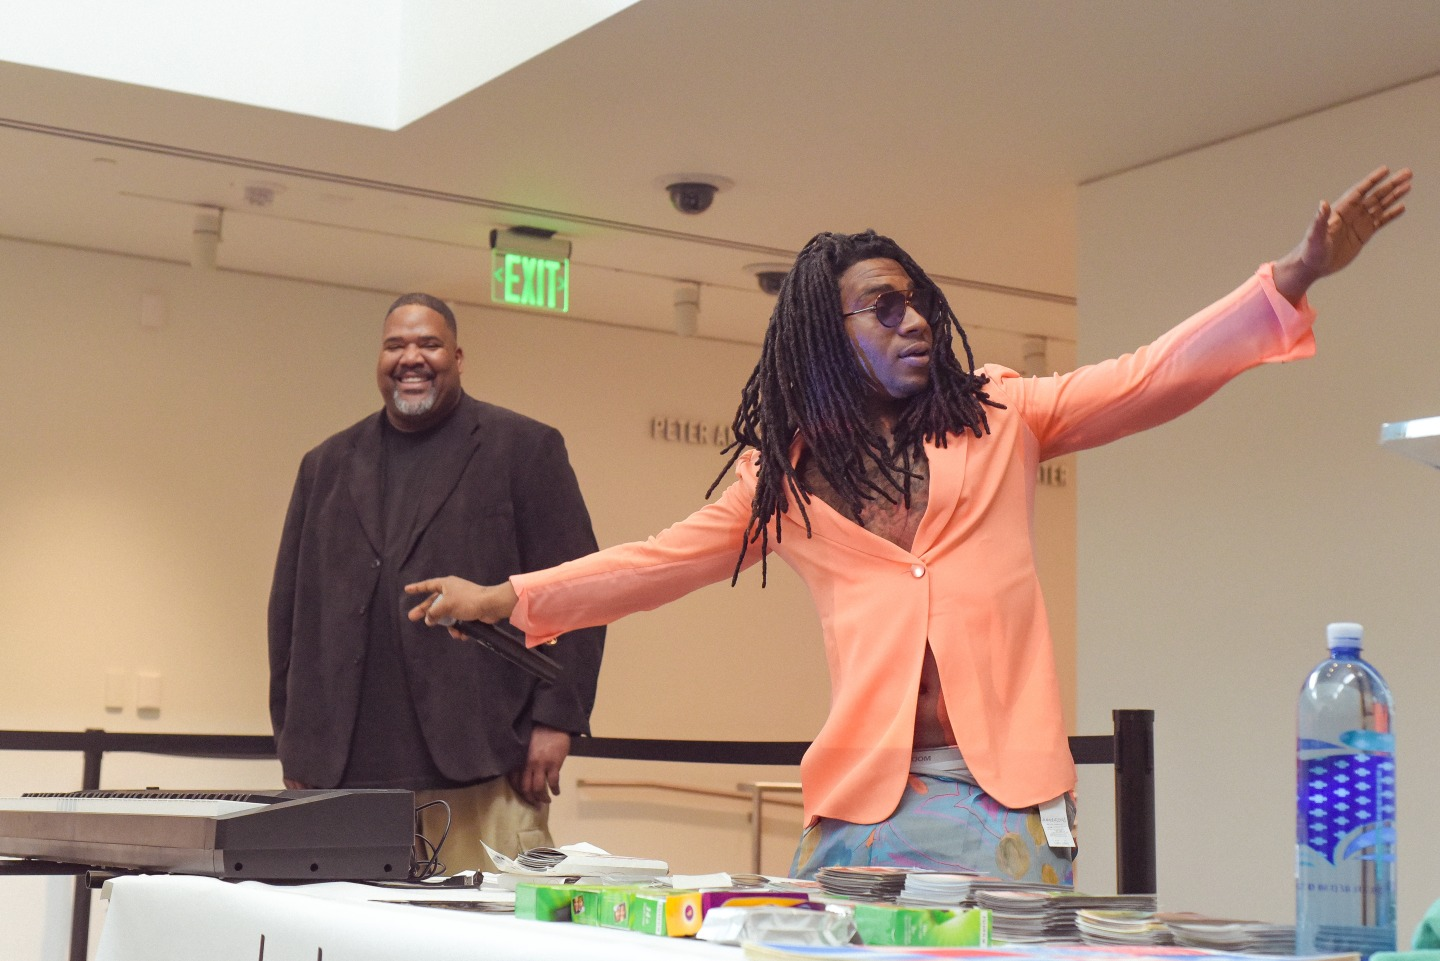 Lil B's first-ever art show was all about giving back